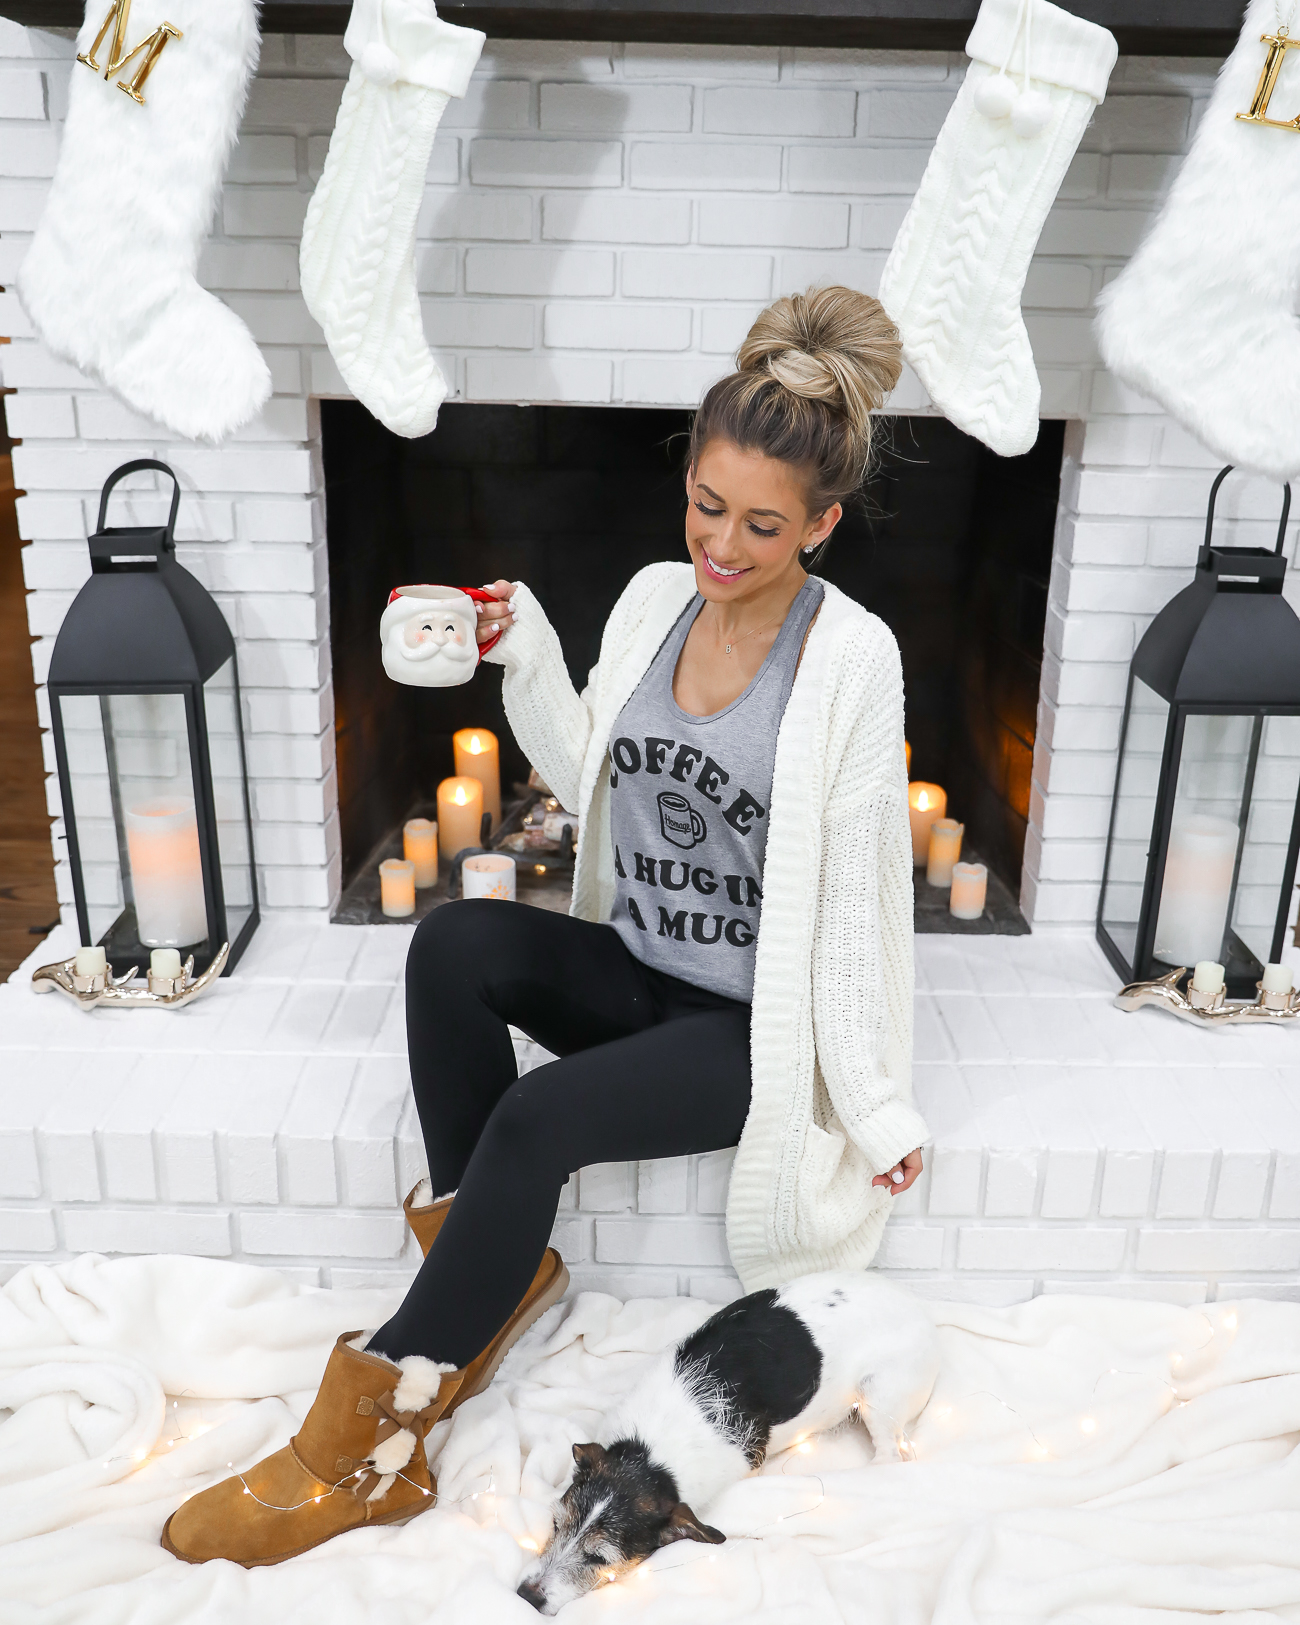 UGGS KOOLABURRA VICTORIA SHORT BOOTS CASUAL WINTER OUTFIT COFFEE TANK TOP WHITE CHENILLE CARDIGAN WHITE FARMHOUSE FIREPLACE LAURA BEVERLIN-2